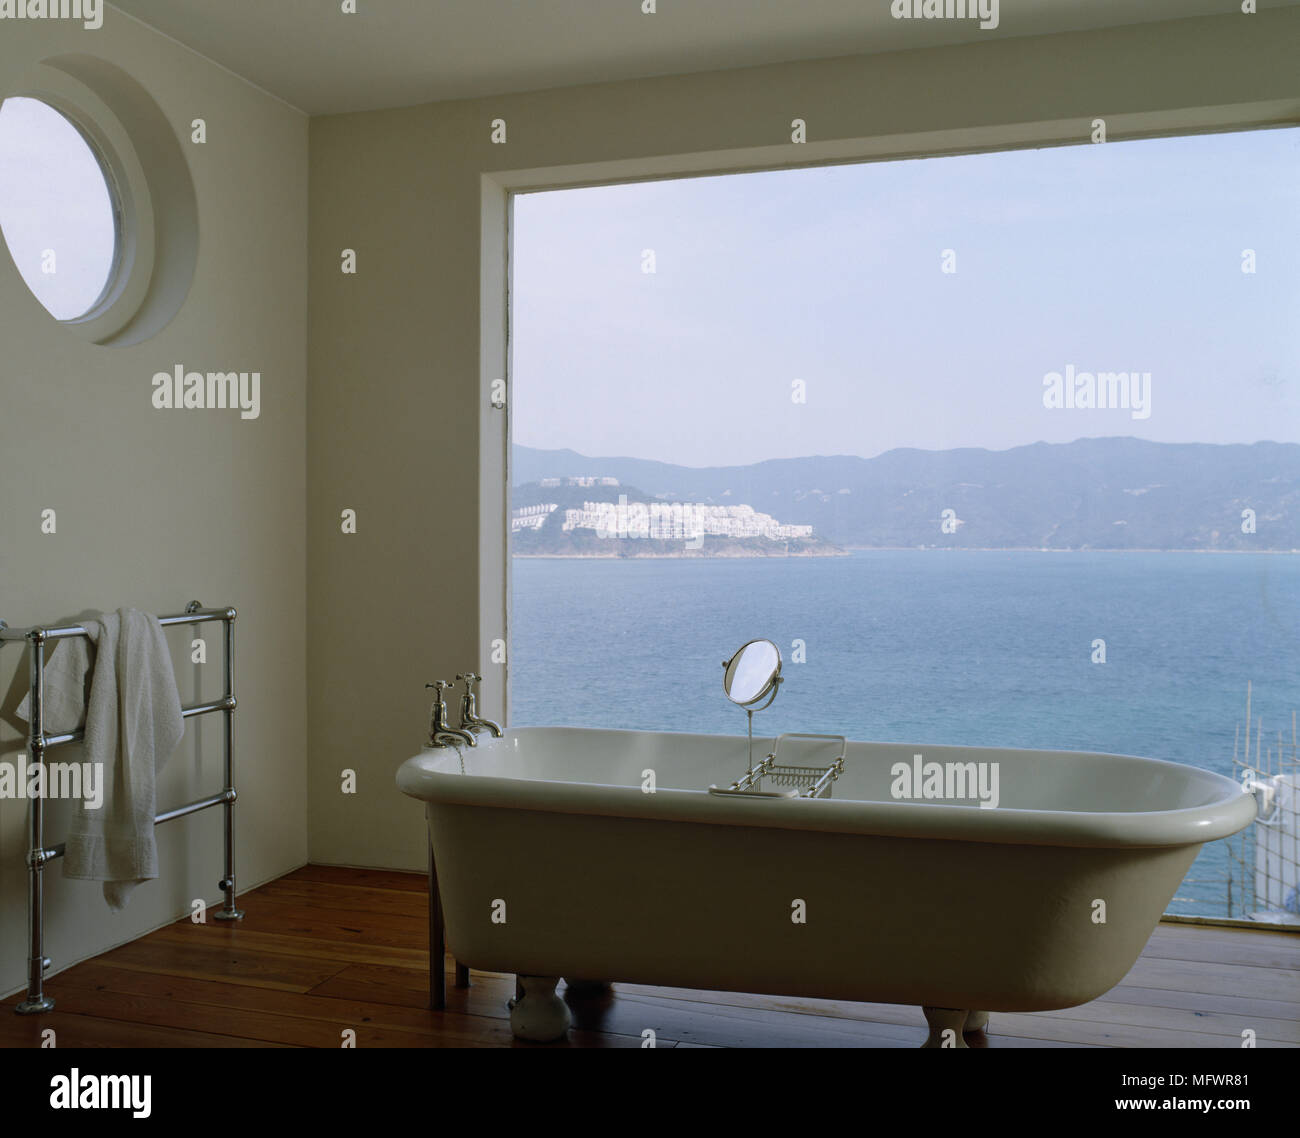 Freestanding bath in front of large window with sea view Stock Photo ...